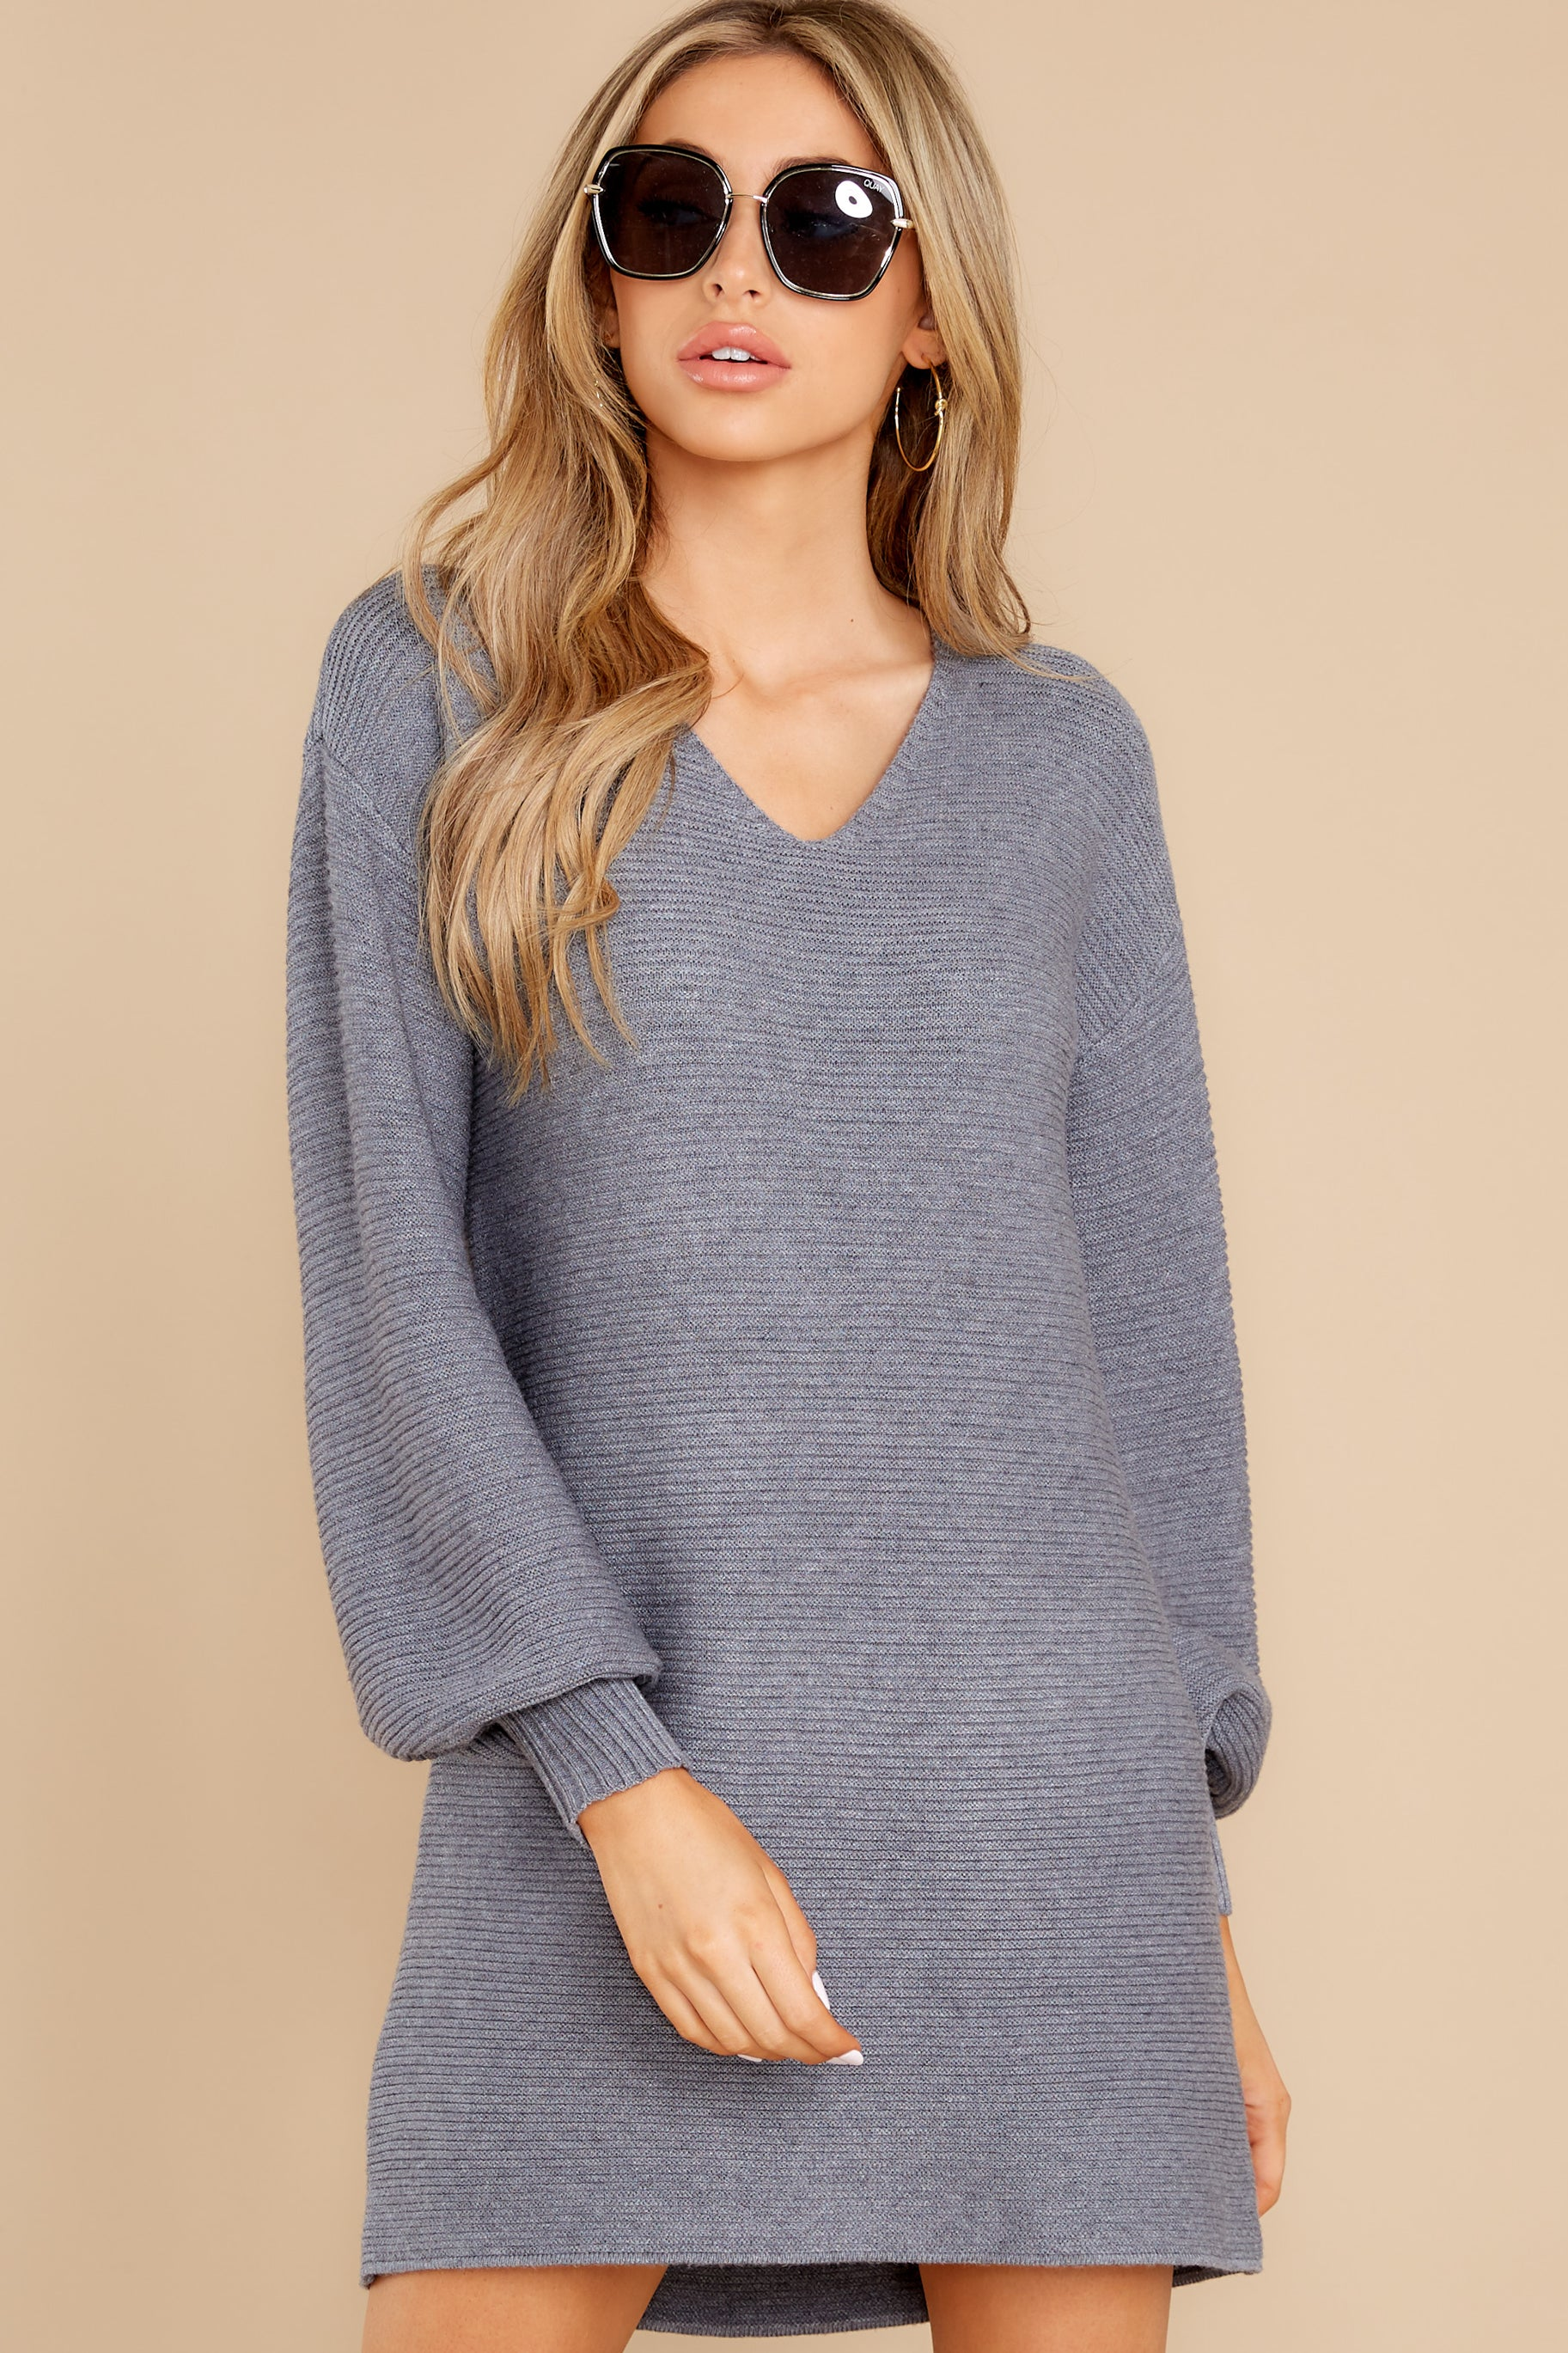 5 Collected Thoughts Charcoal Sweater Dress at reddress.com